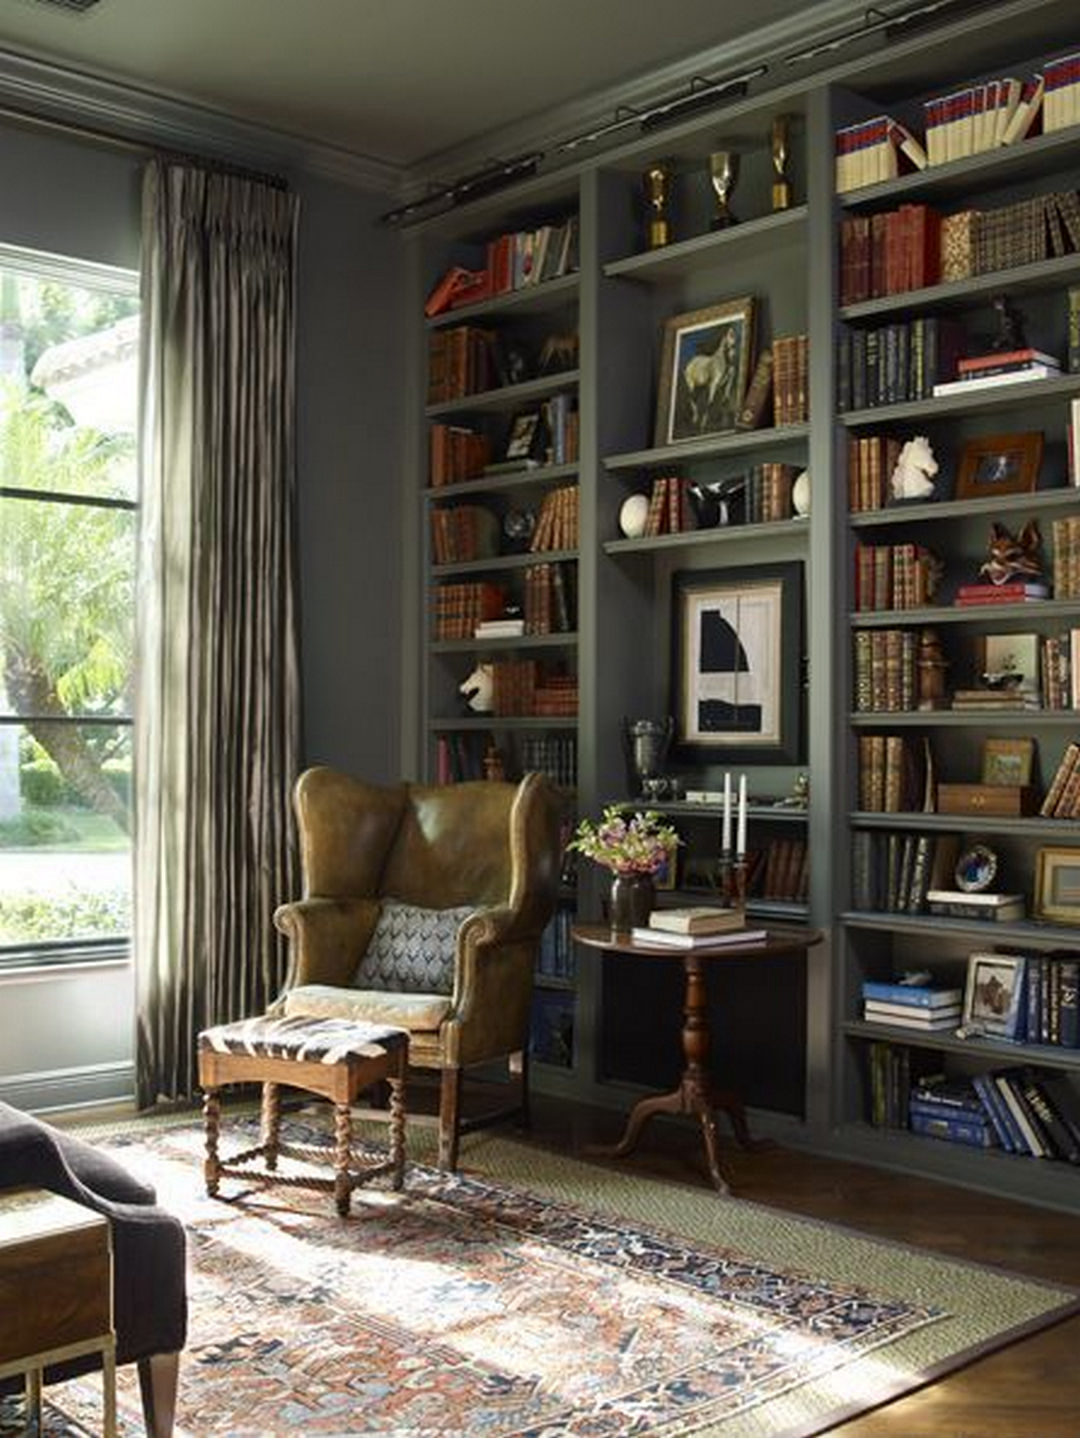 Modern Home Library Ideas: Lake House: An Atypical, Modern Home With Expressive